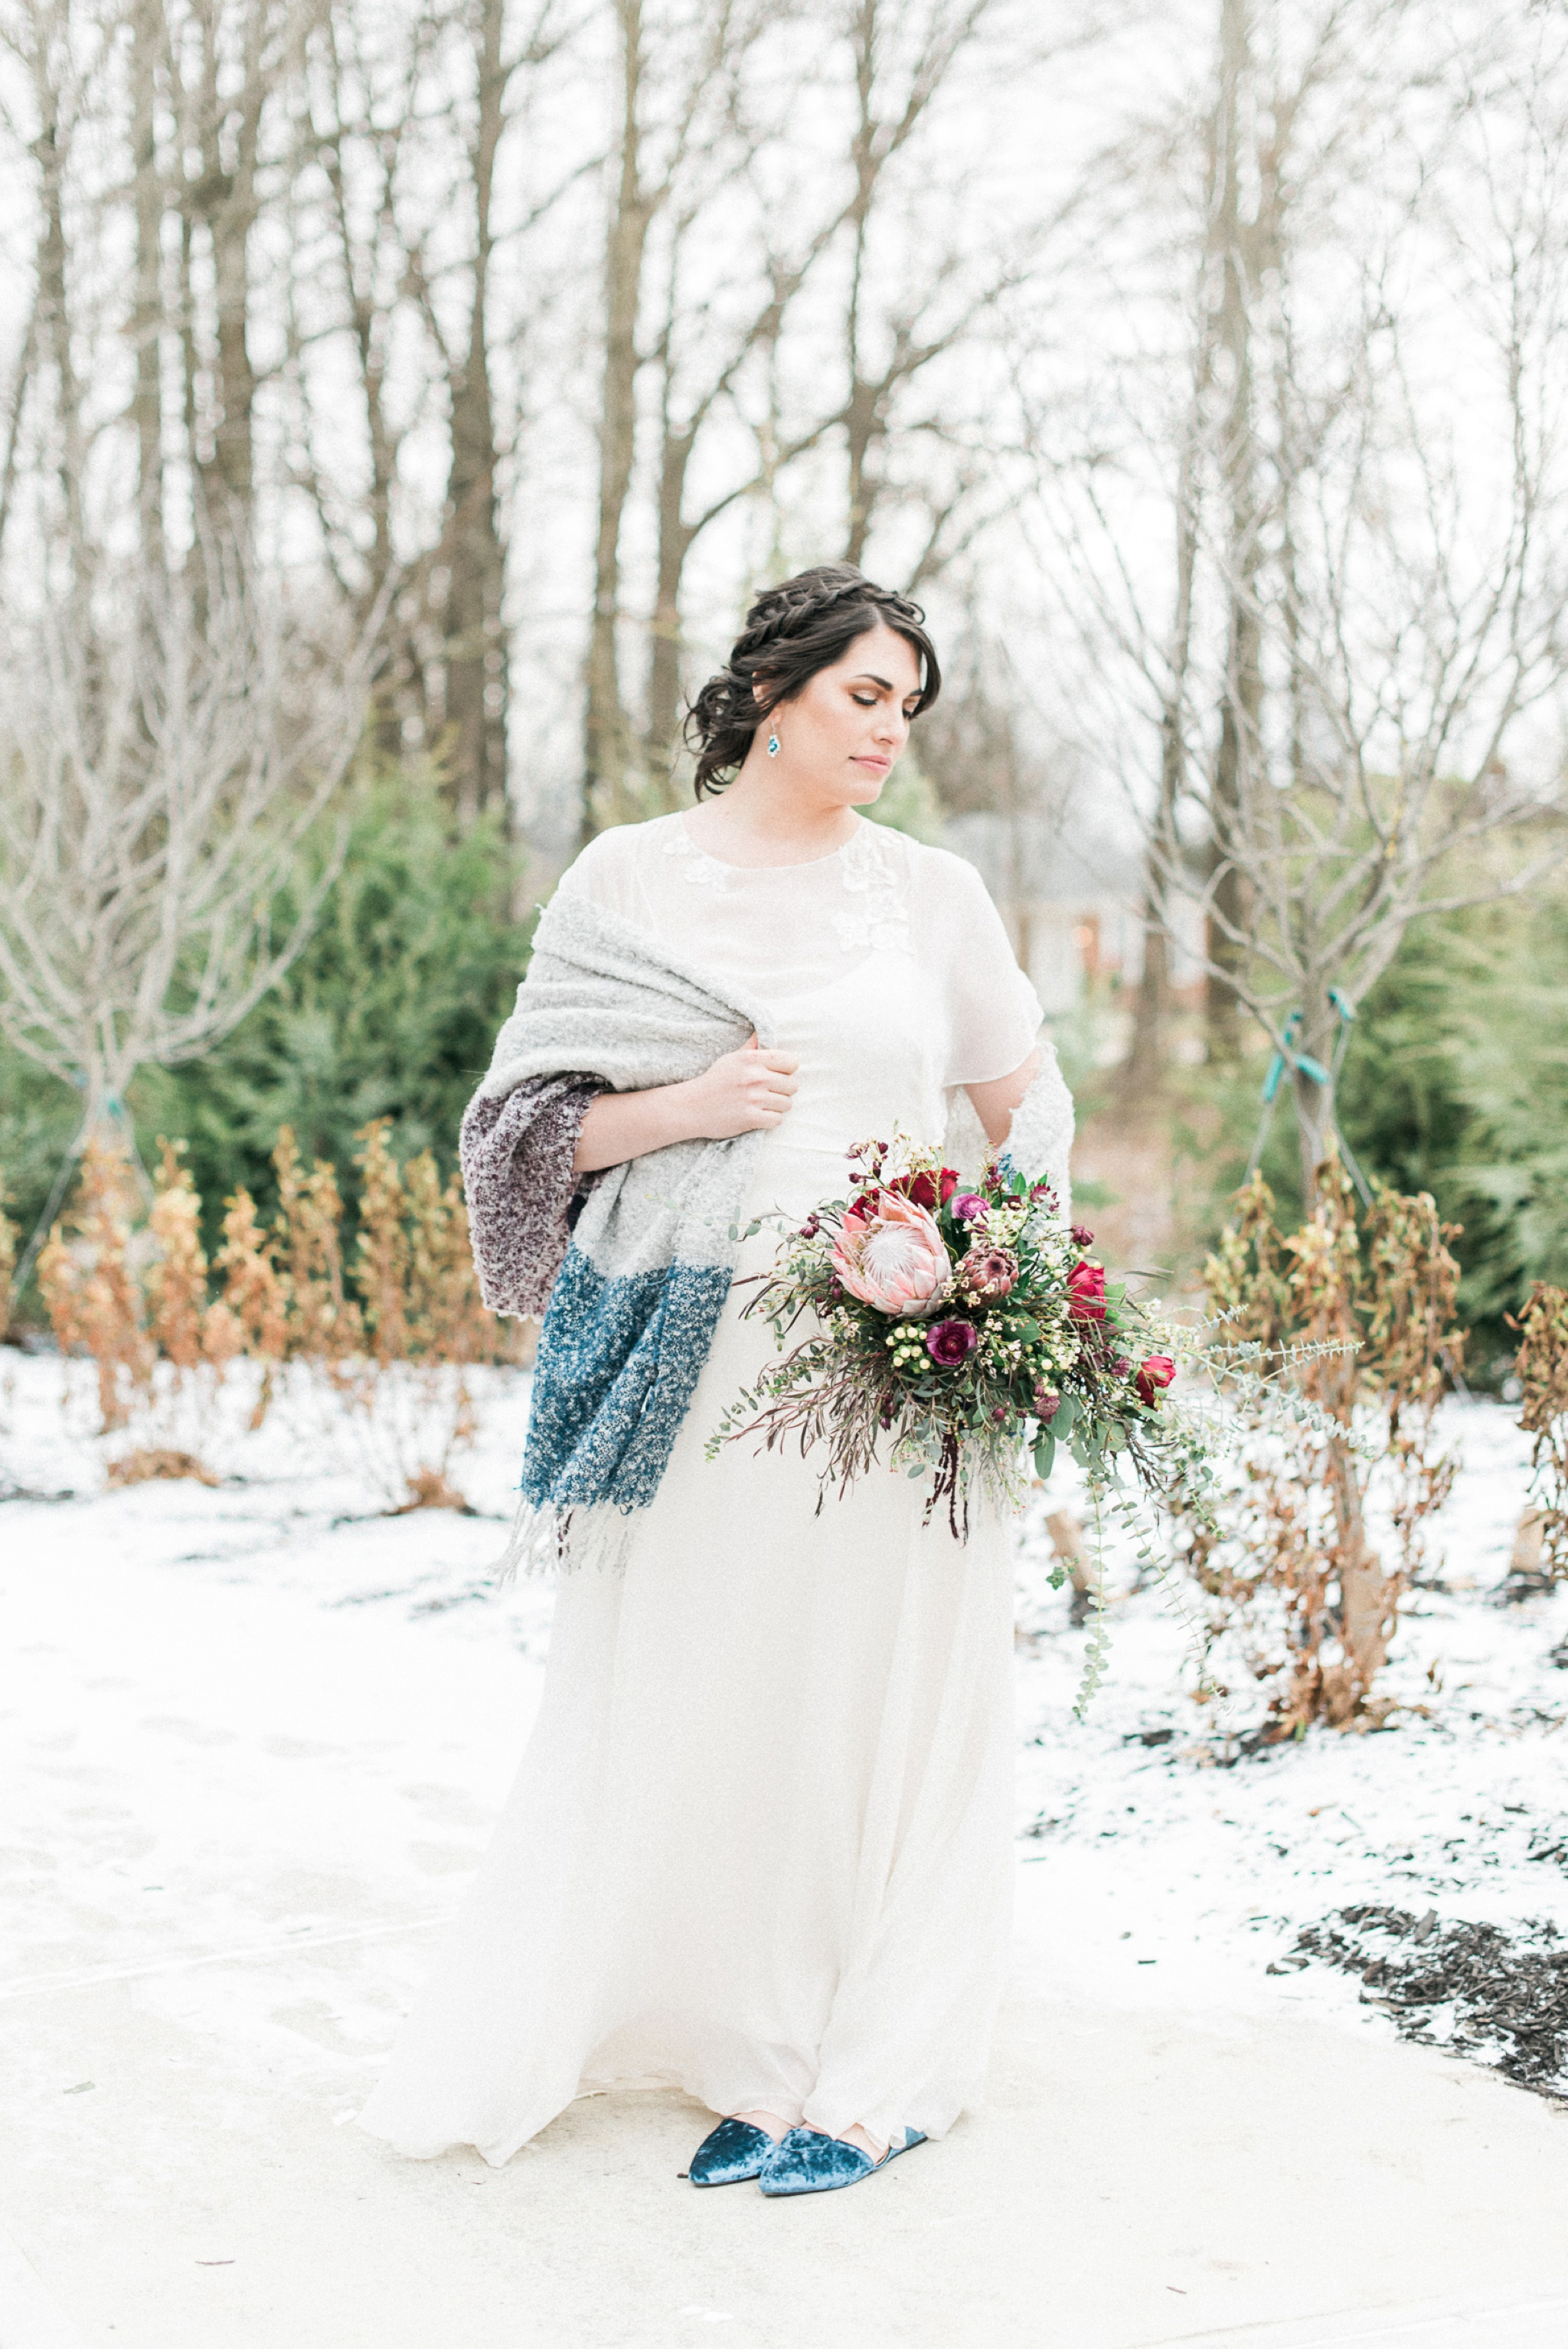 the-estate-new-albany-ohio-winter-wedding-inspiration-75.jpg